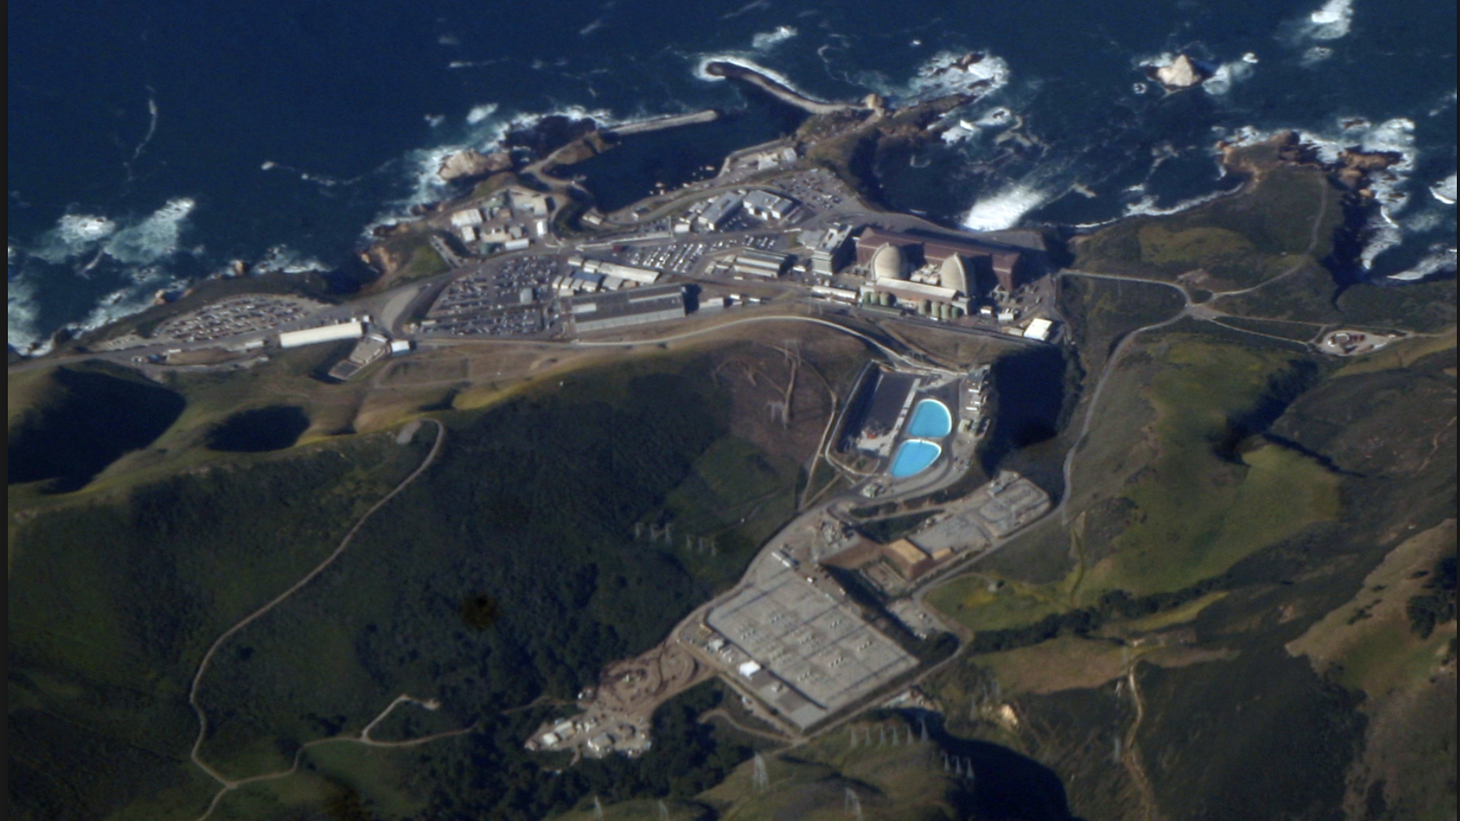 Full decommissioning of the Diablo Canyon nuclear plant is estimated to take decades and cost nearly $4 billion.